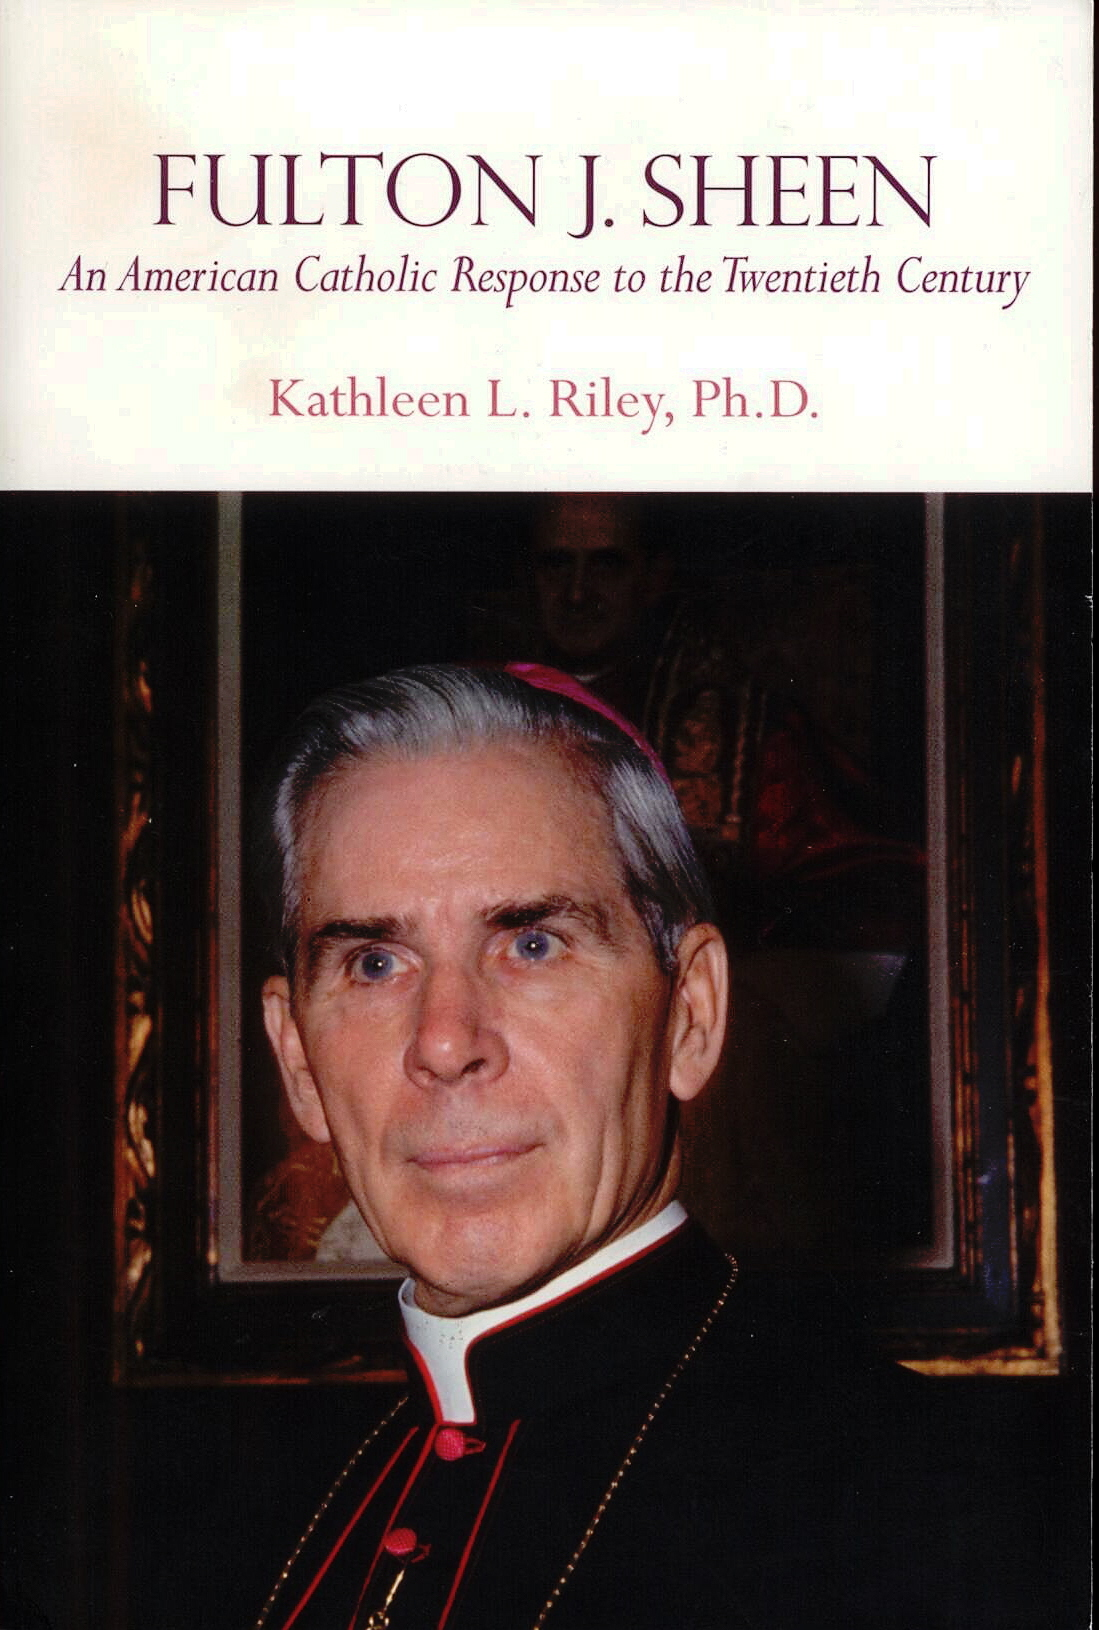 Fulton J. Sheen by Kathleen L. Riley, Ph.D.